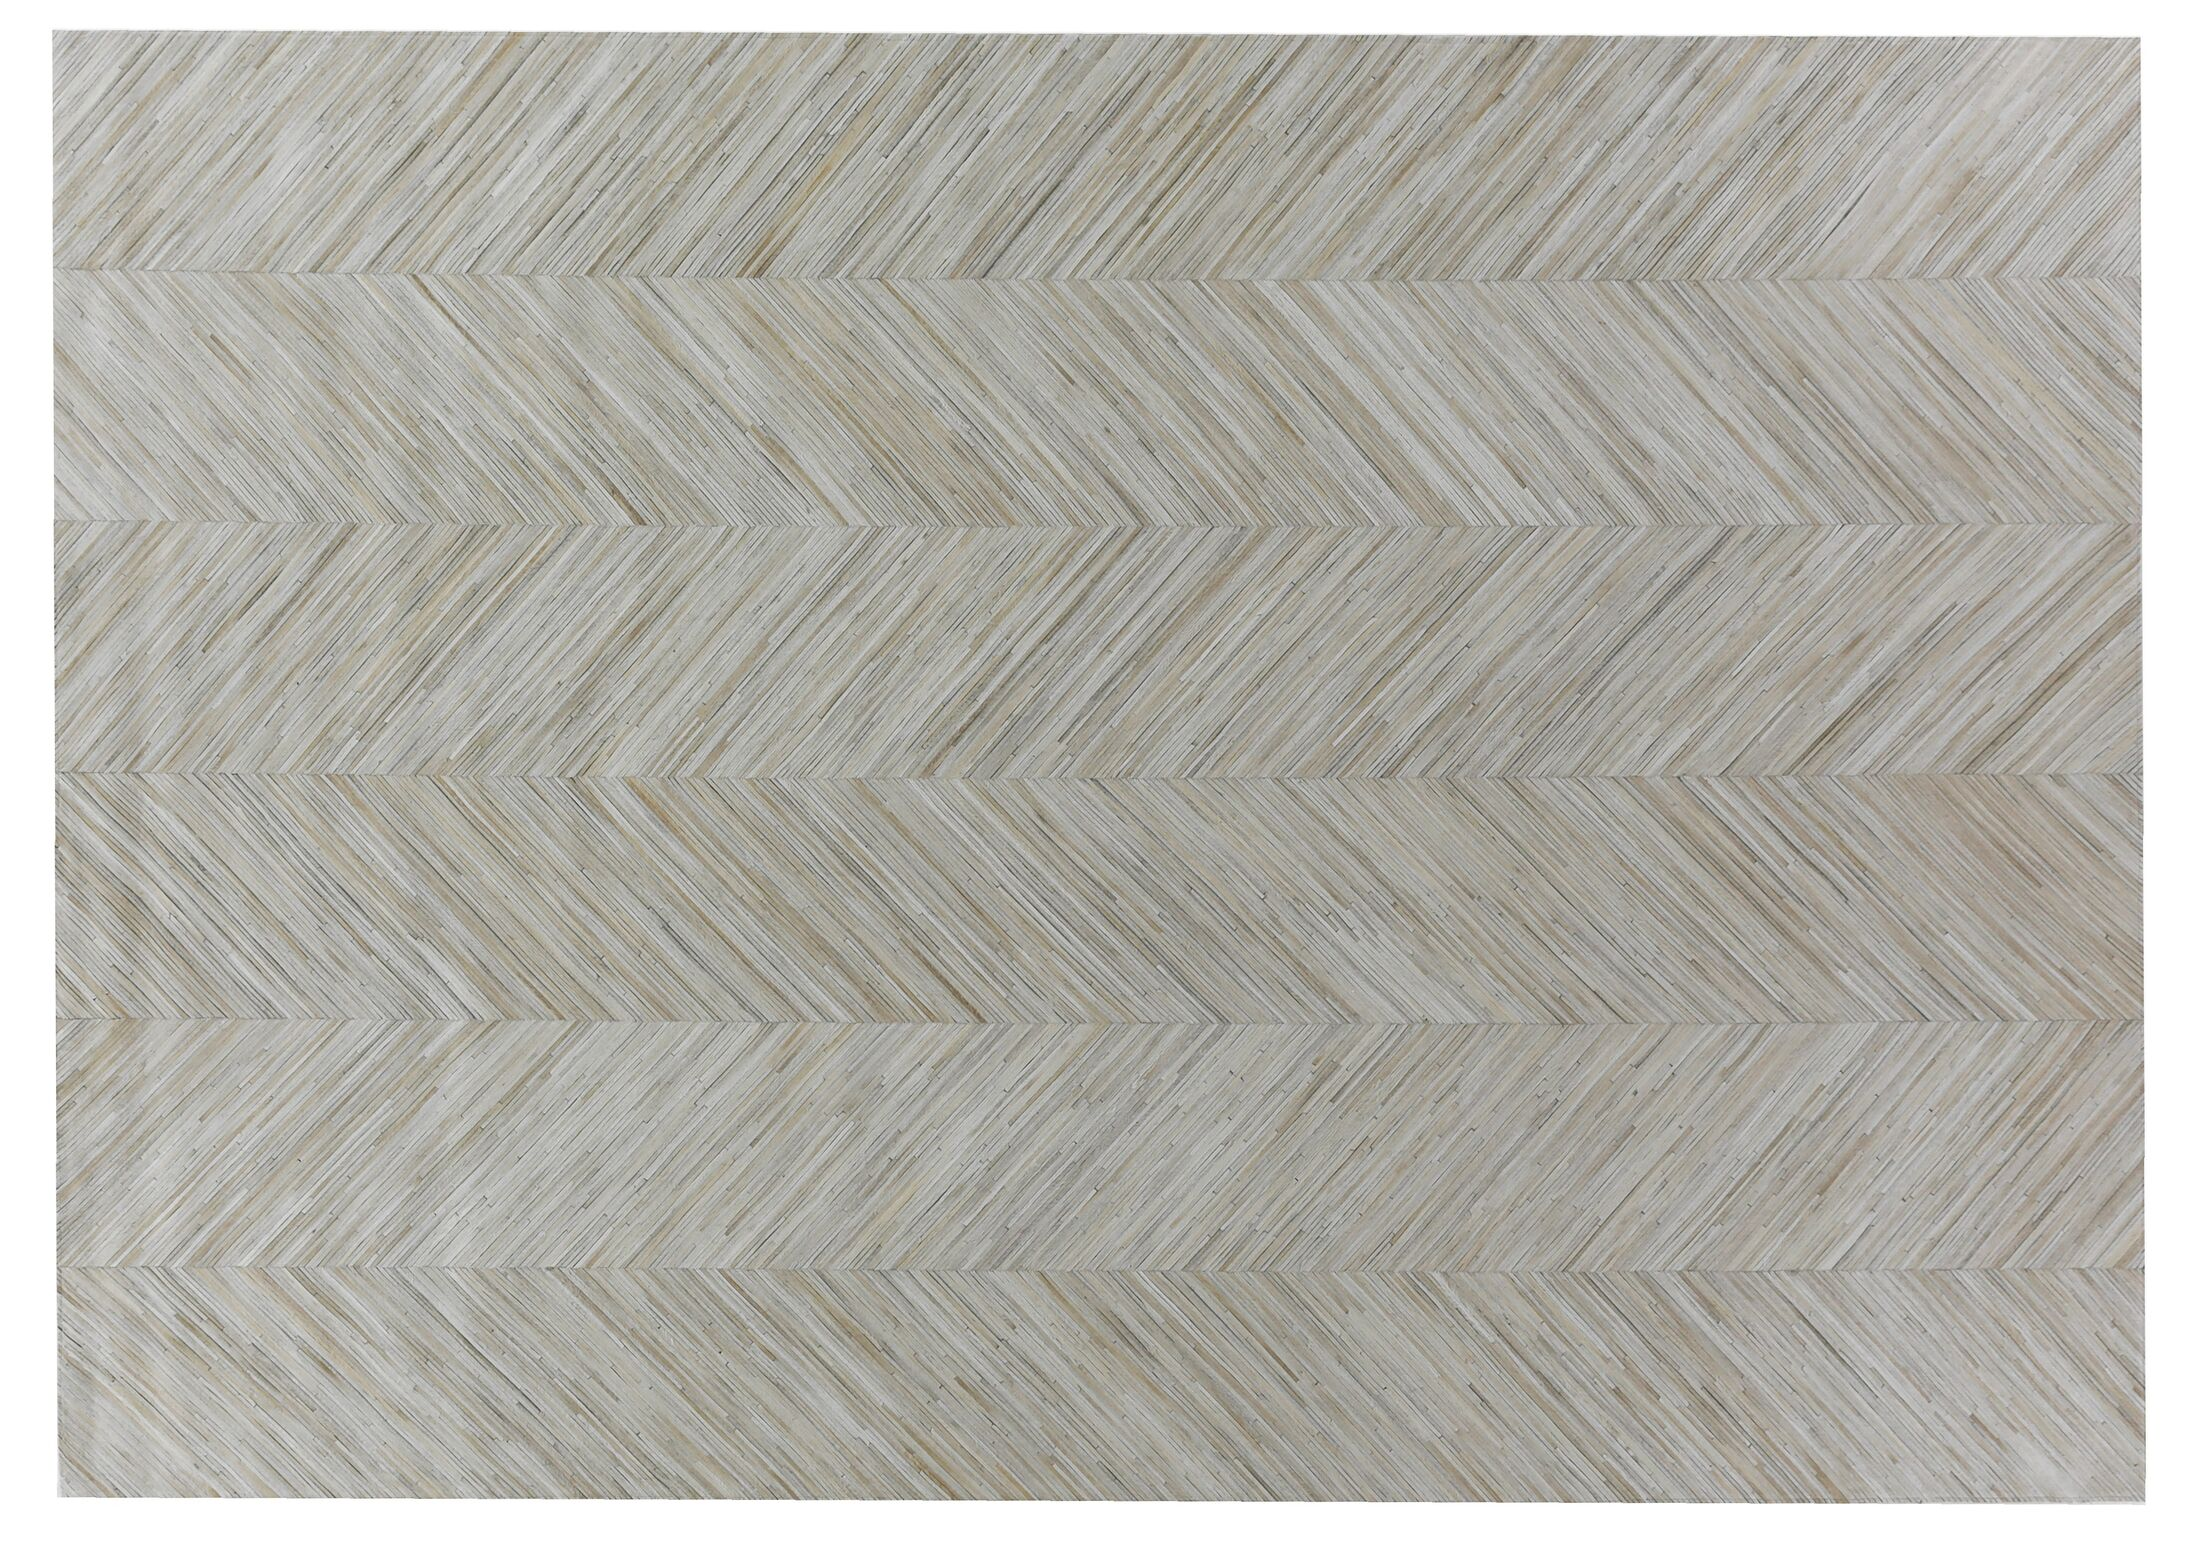 Natural Hide Leather Hand-Woven Gray Area Rug Rug Size: Rectangle 8' x 11'